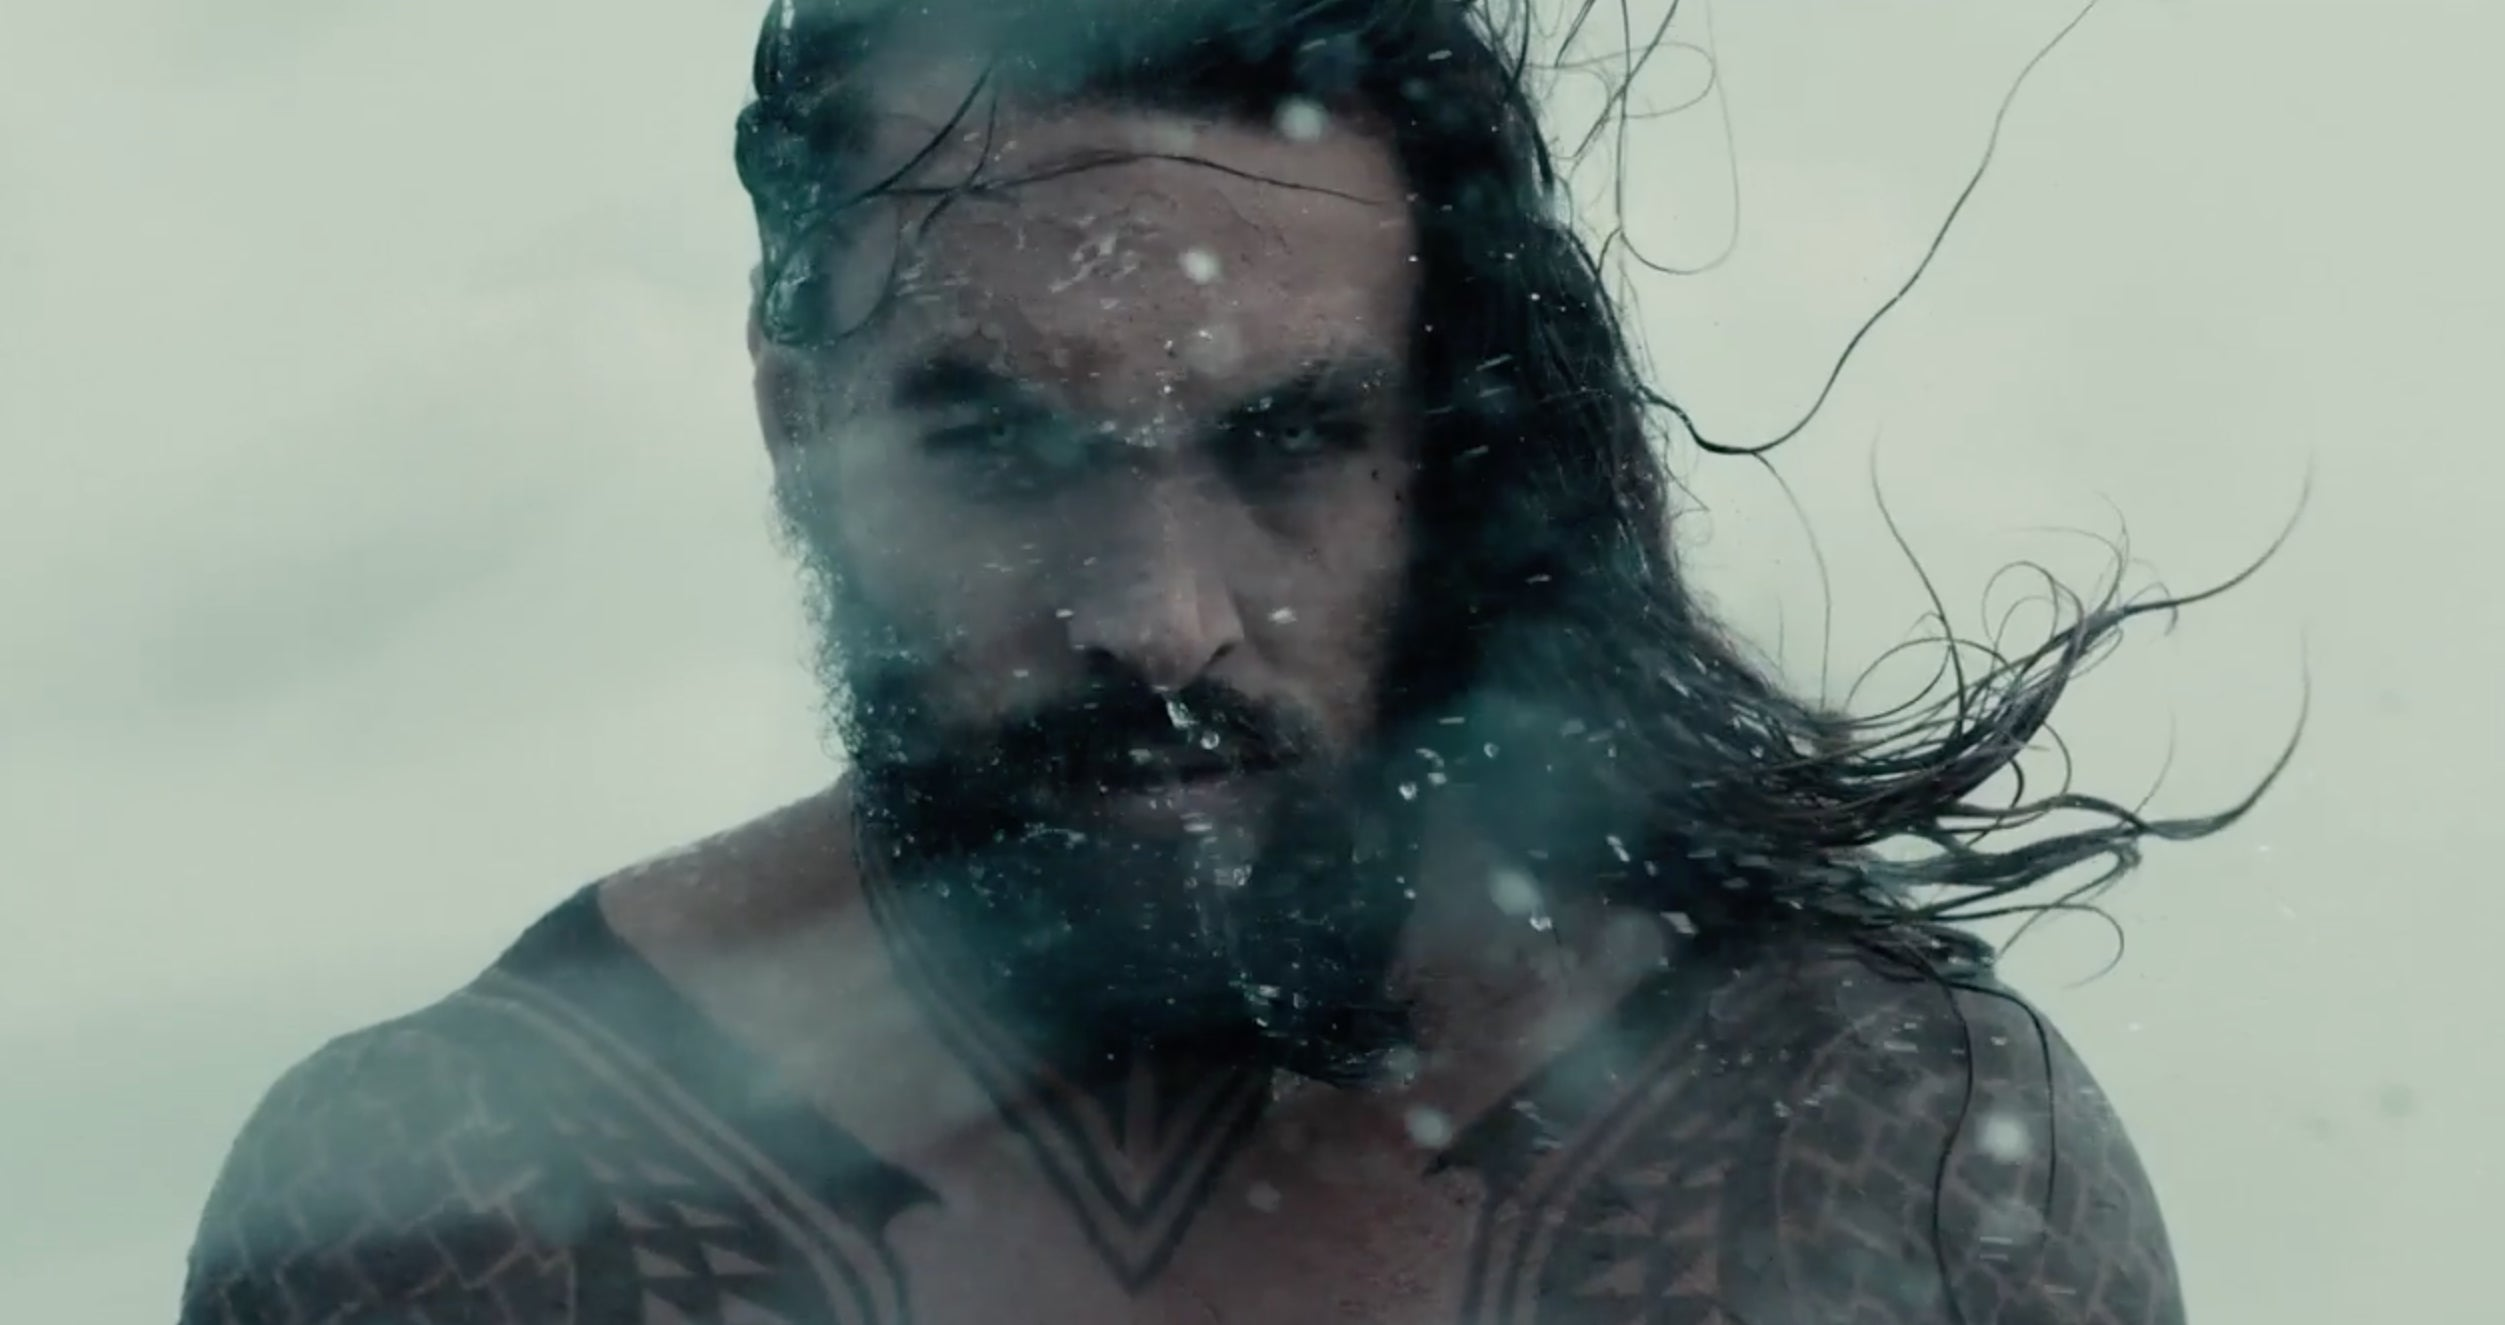 James Wan's Aquaman is a Reluctant Superhero and Reluctant King